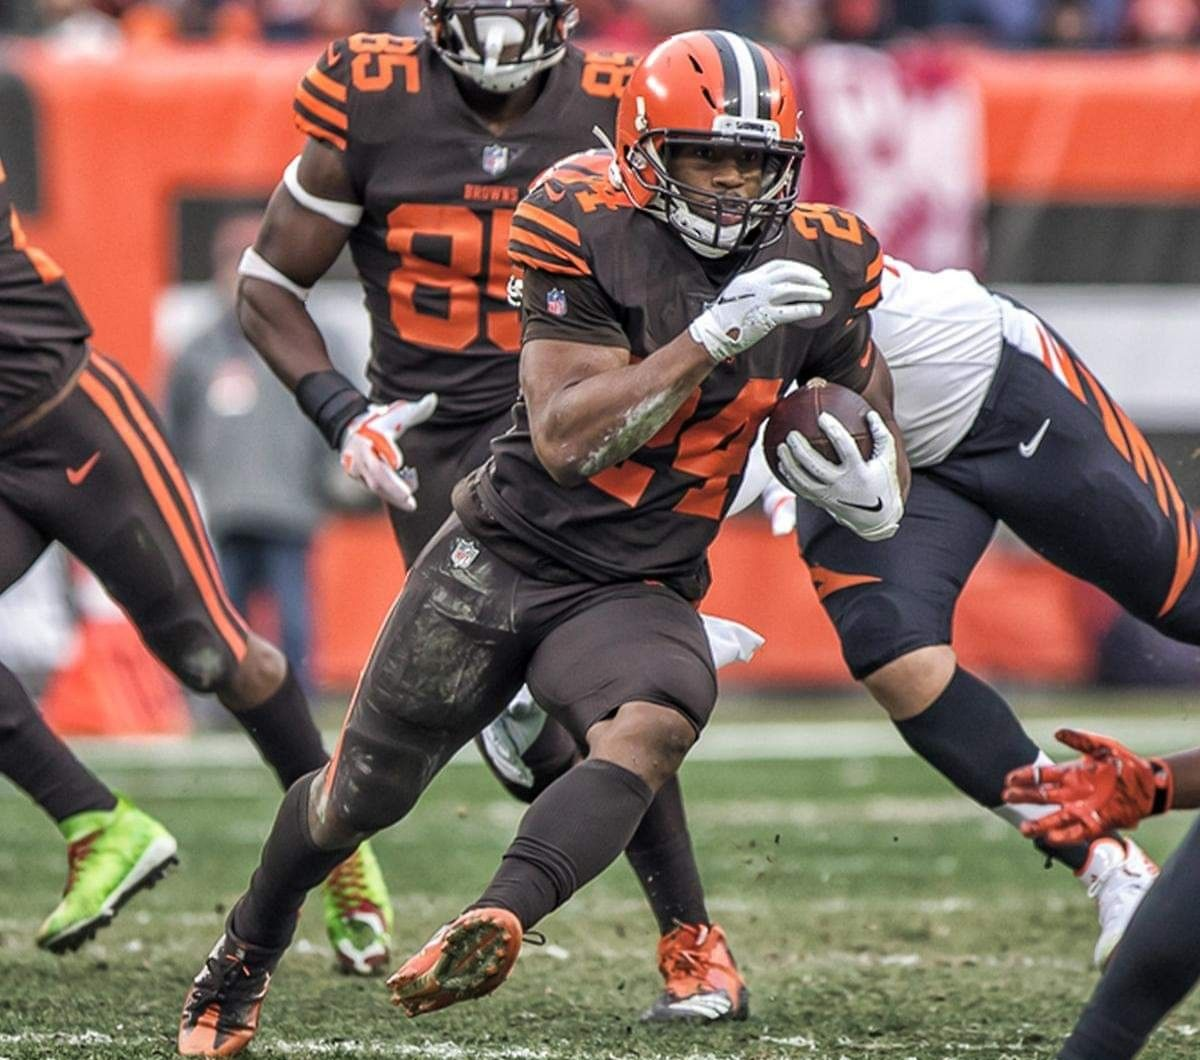 Pin By Adam Boyd On Cleveland Cavaliers In 2020 Cleveland Browns Football Uconn Football Browns Football